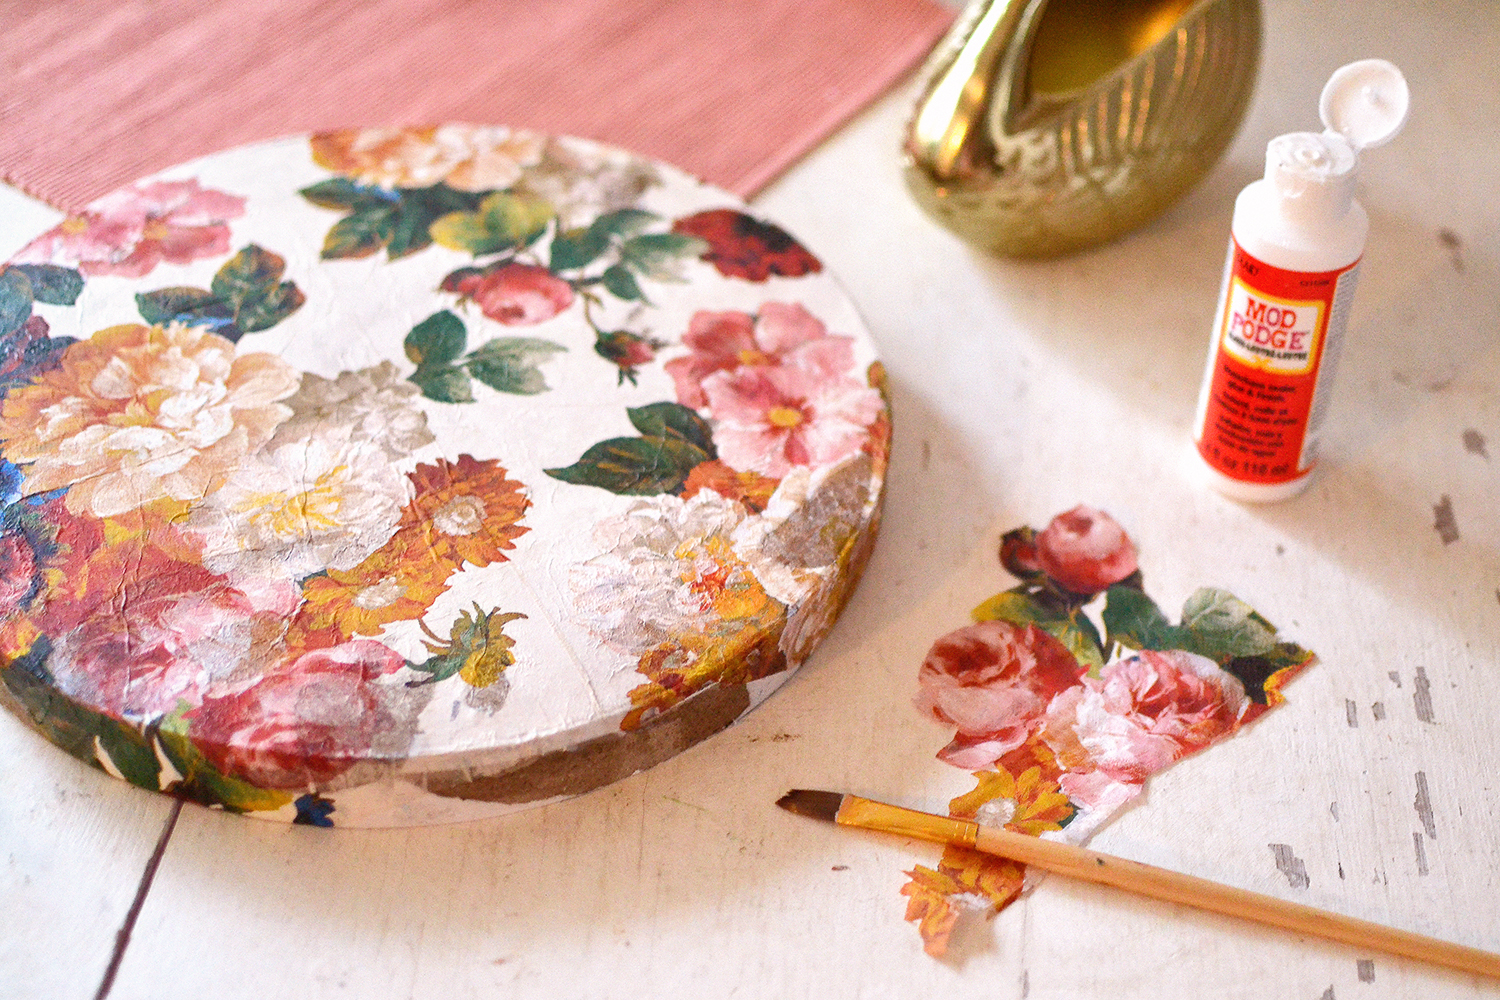 Retromantisch - DIY - hoedendoos bloemen decoupage servetten napkins floral hat box retro romantic mod podge flowers bloemen